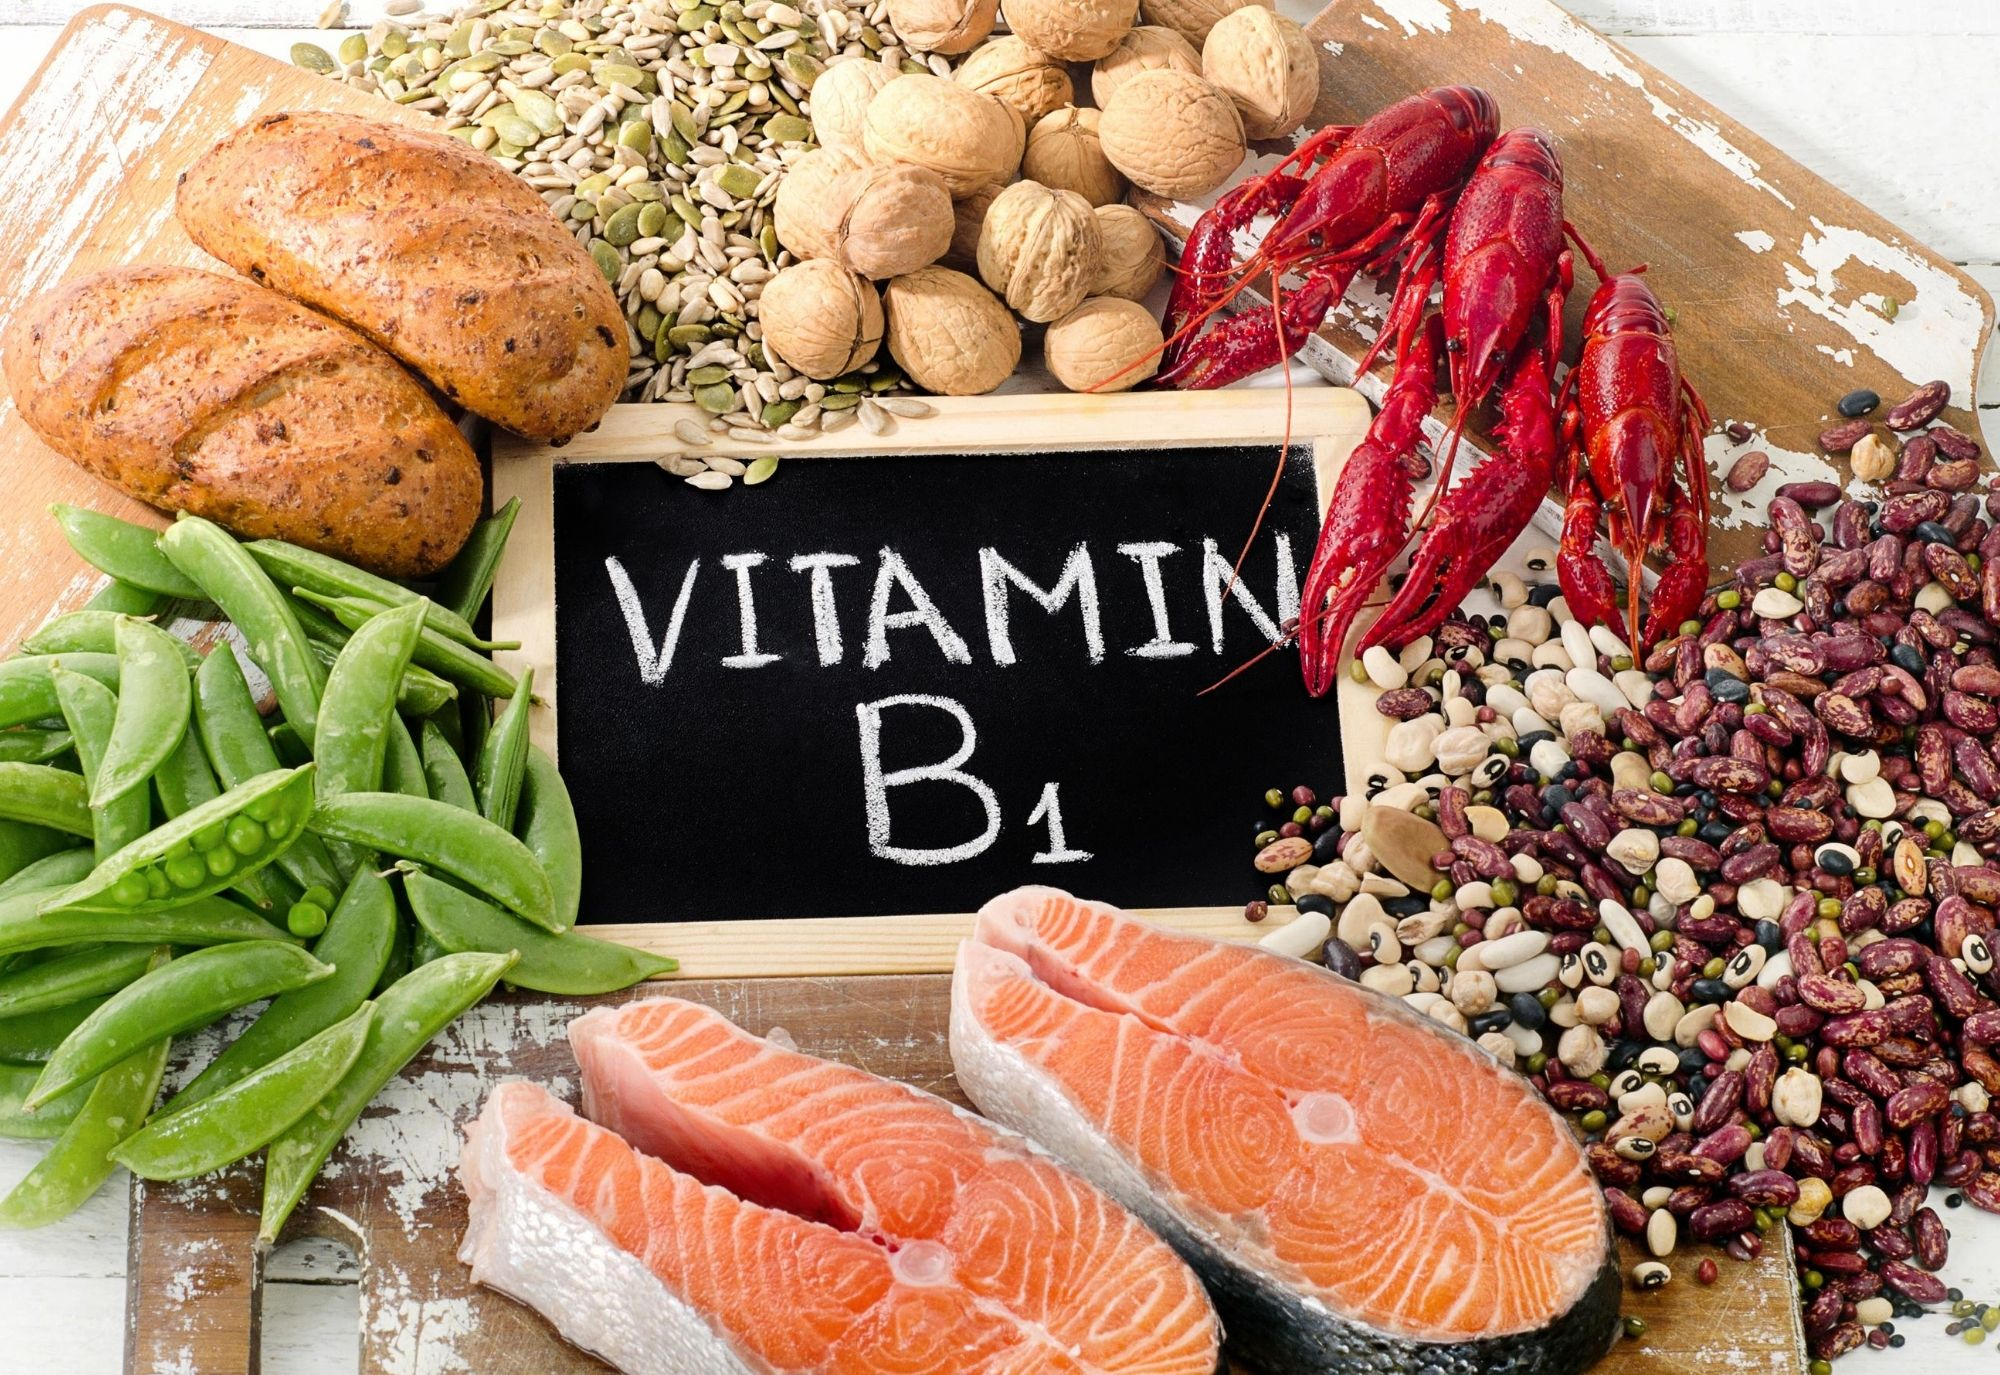 Vitamin B1 or thiamine: what is it used for?